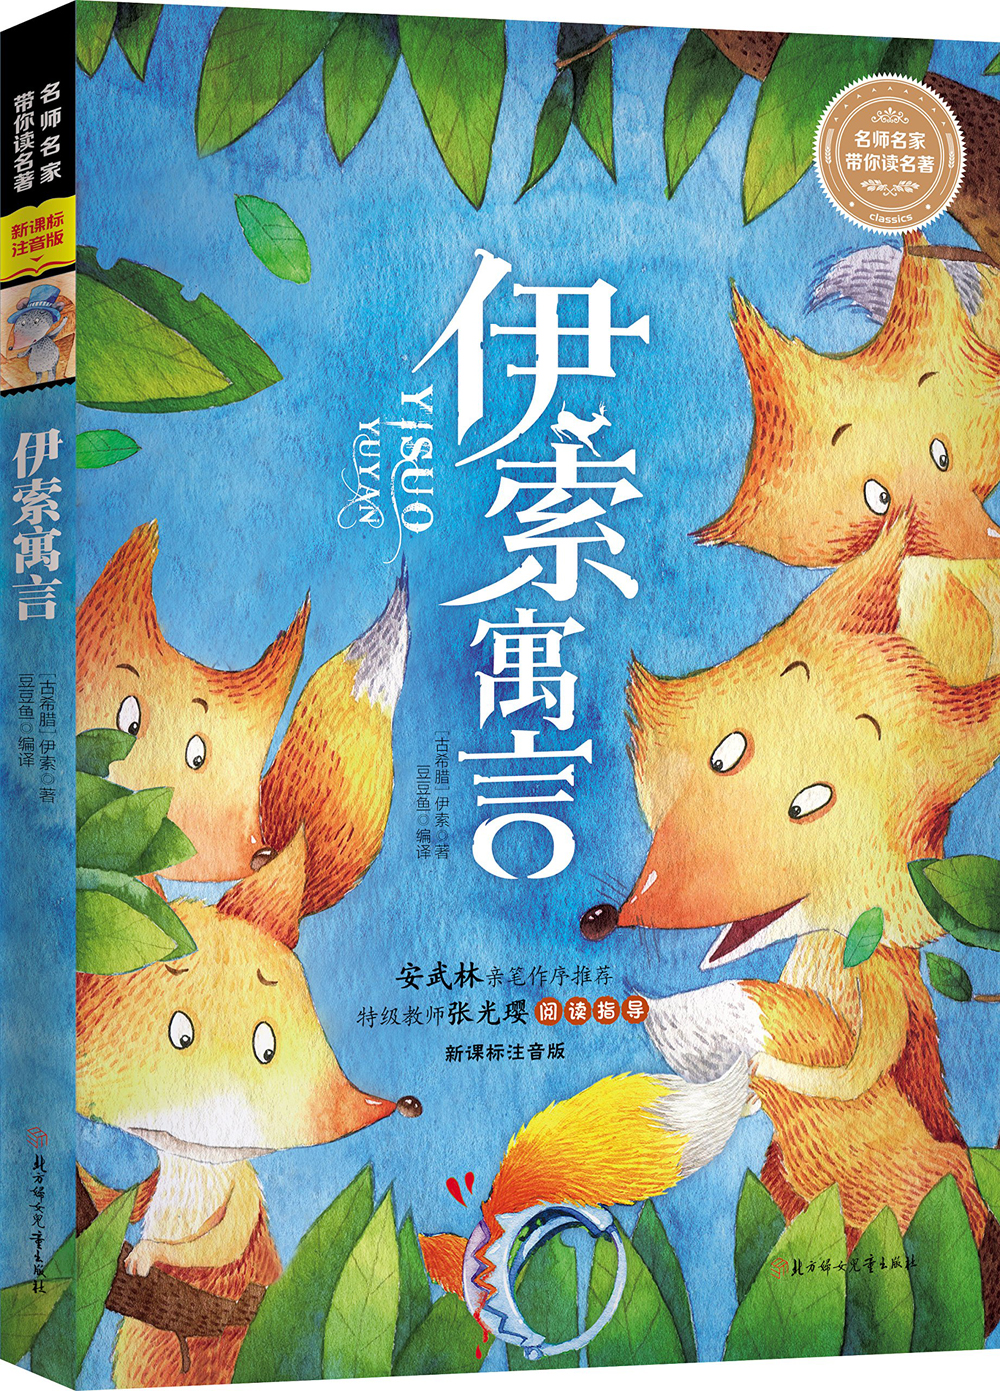 Children Andersens Fairy Tales book in Chinese for Kids Children age 2-10, Chinese short story book Children Andersens Fairy Tales book in Chinese for Kids Children age 2-10, Chinese short story book